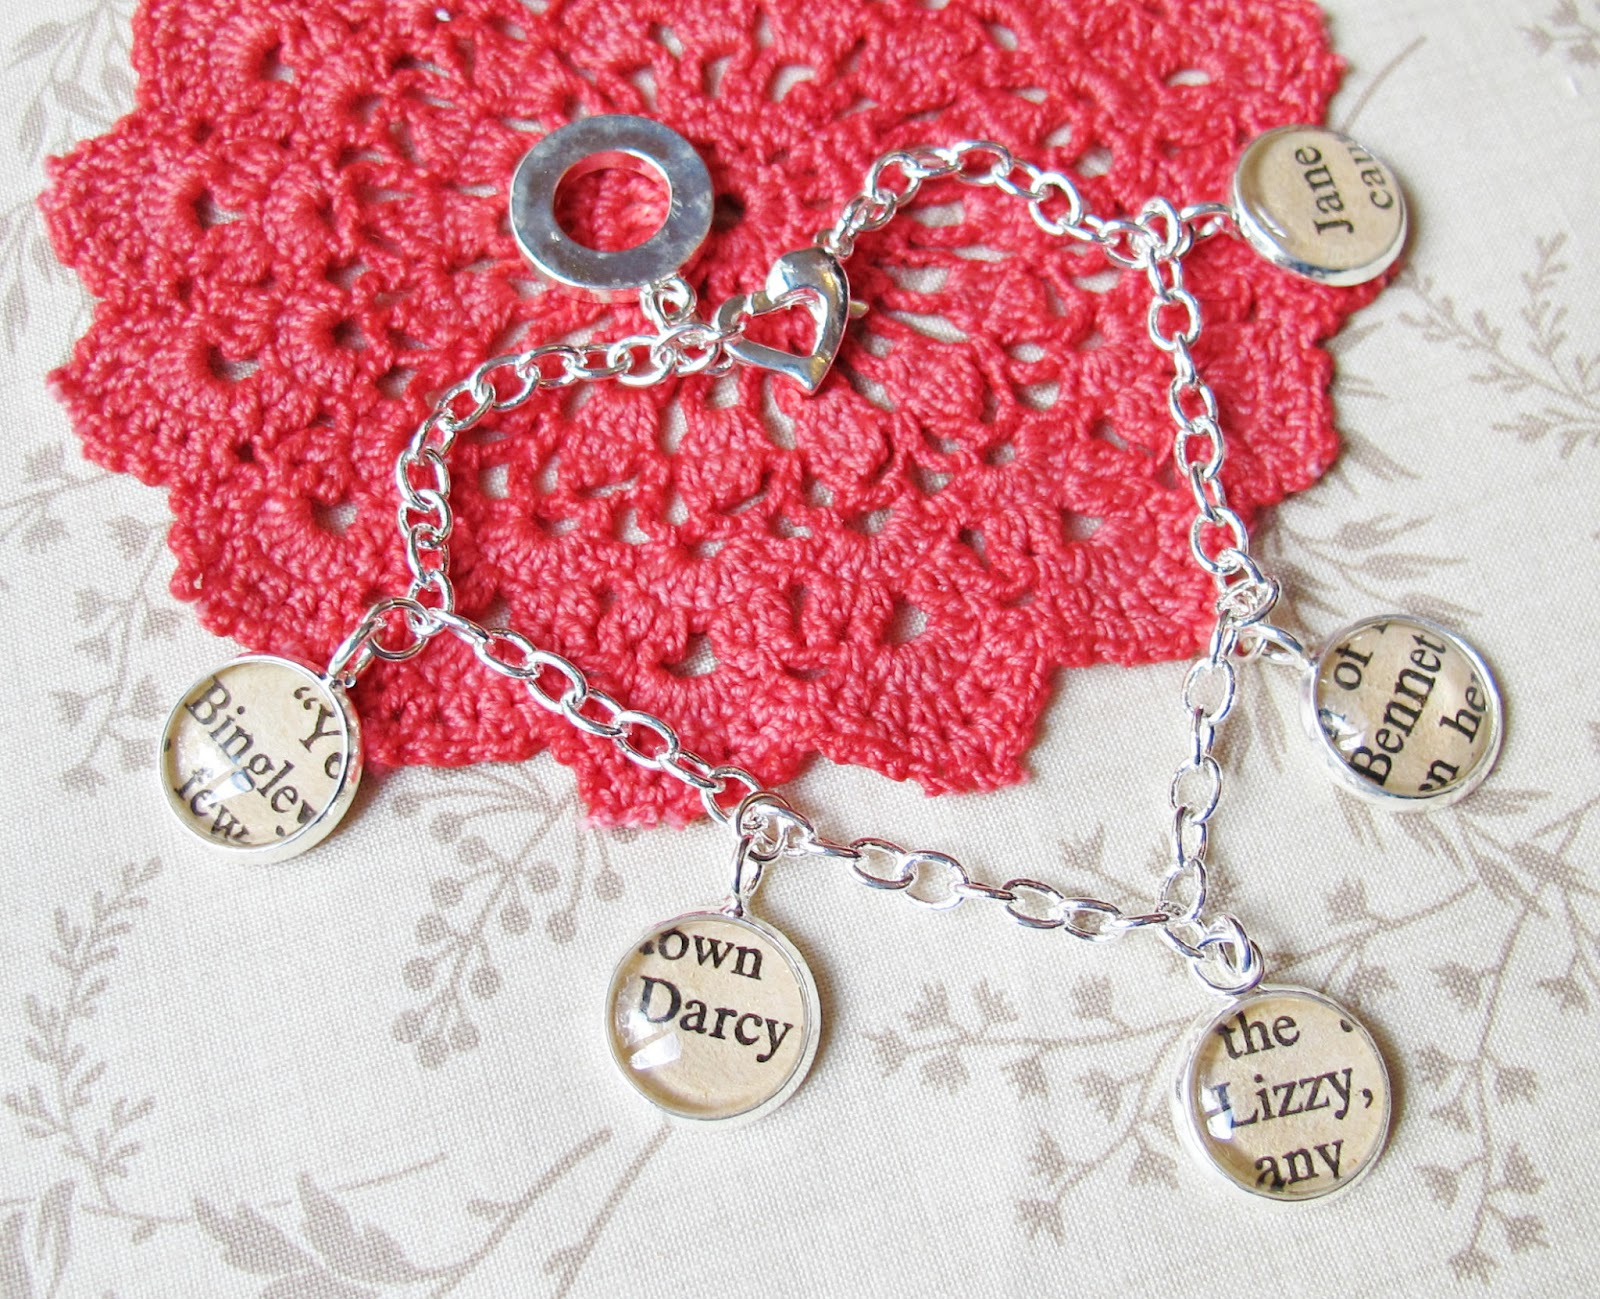 image charm bracelet pride and prejudice mr darcy bingley lizzy bennet jane austen two cheeky monkeys